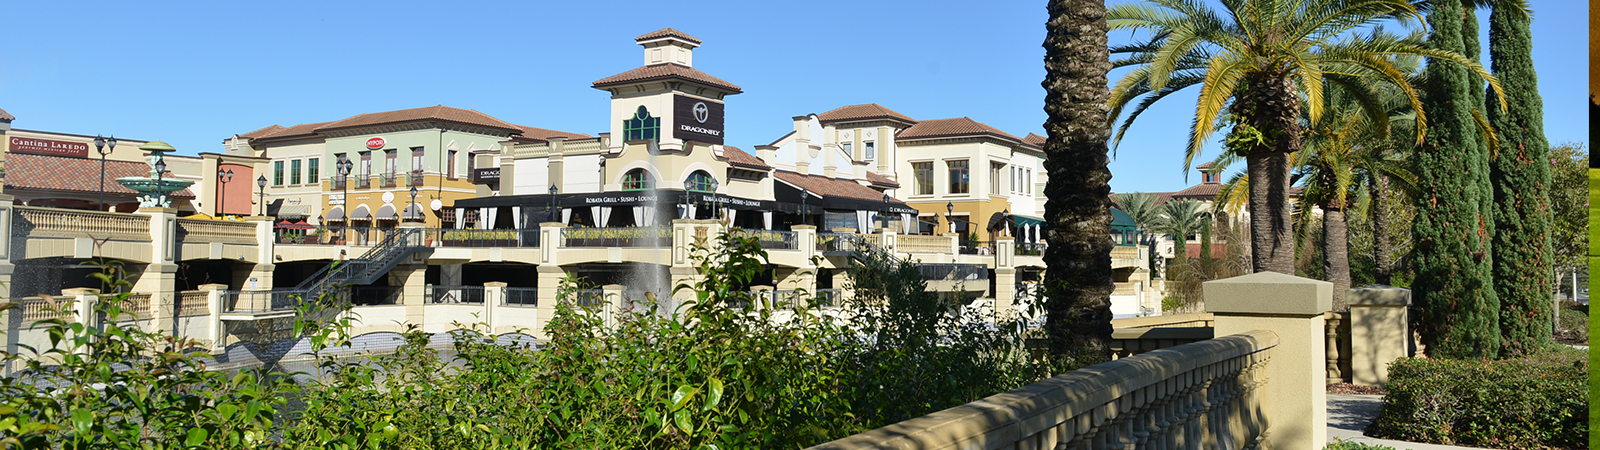 Dellagio Residences In Dr Phillips Is A New Community Of